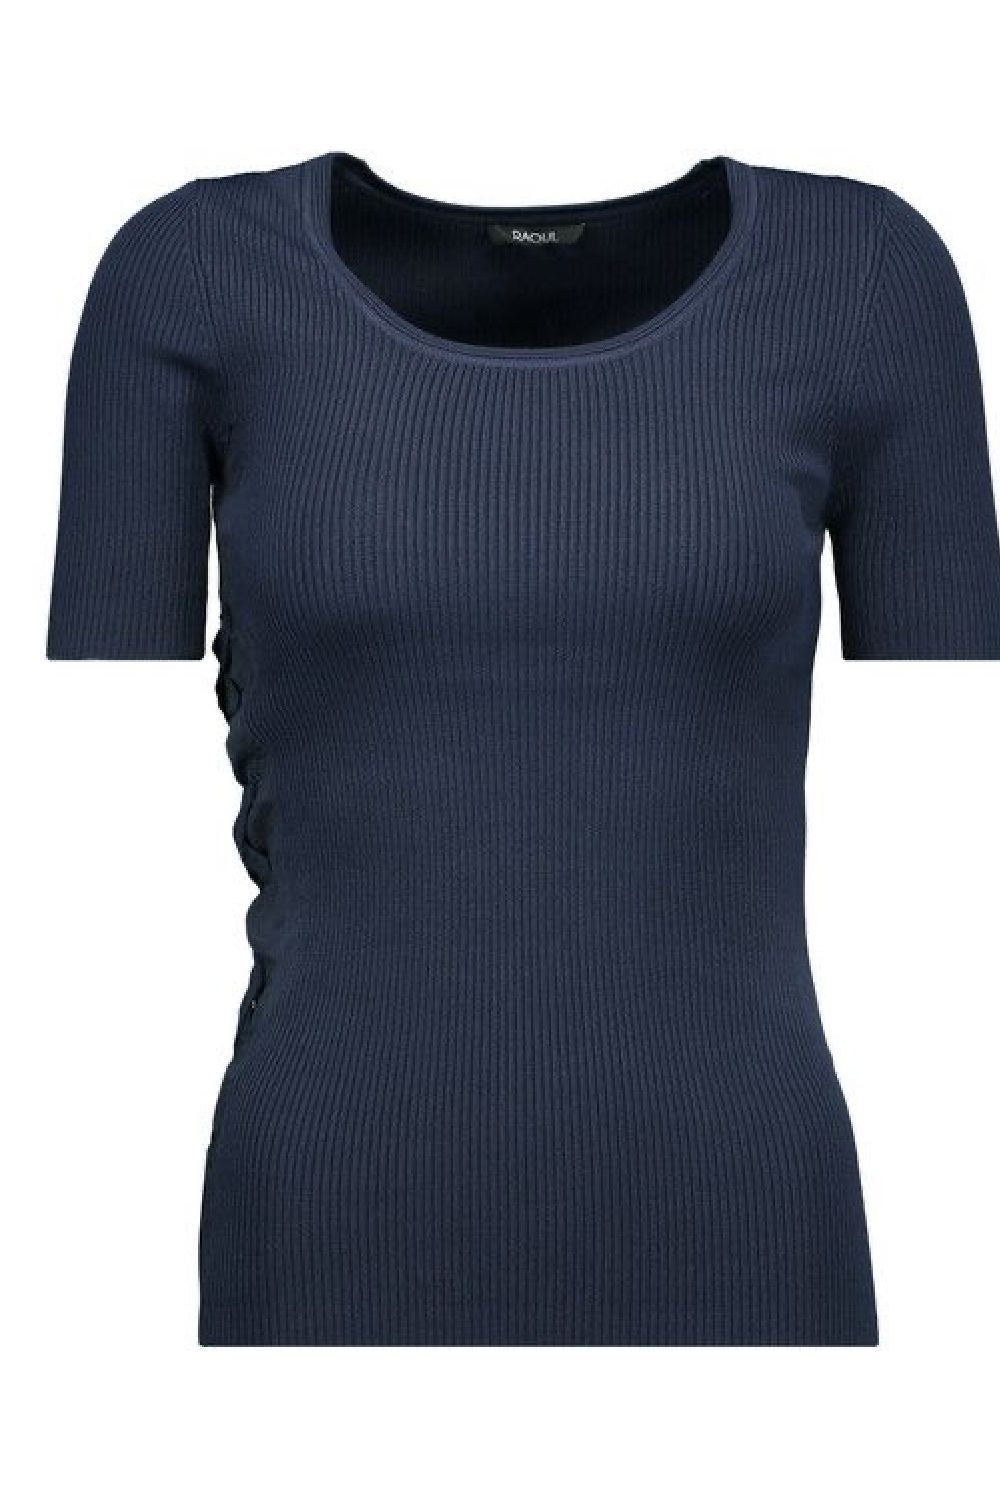 Knitted Blue Top - The Bobby Boga